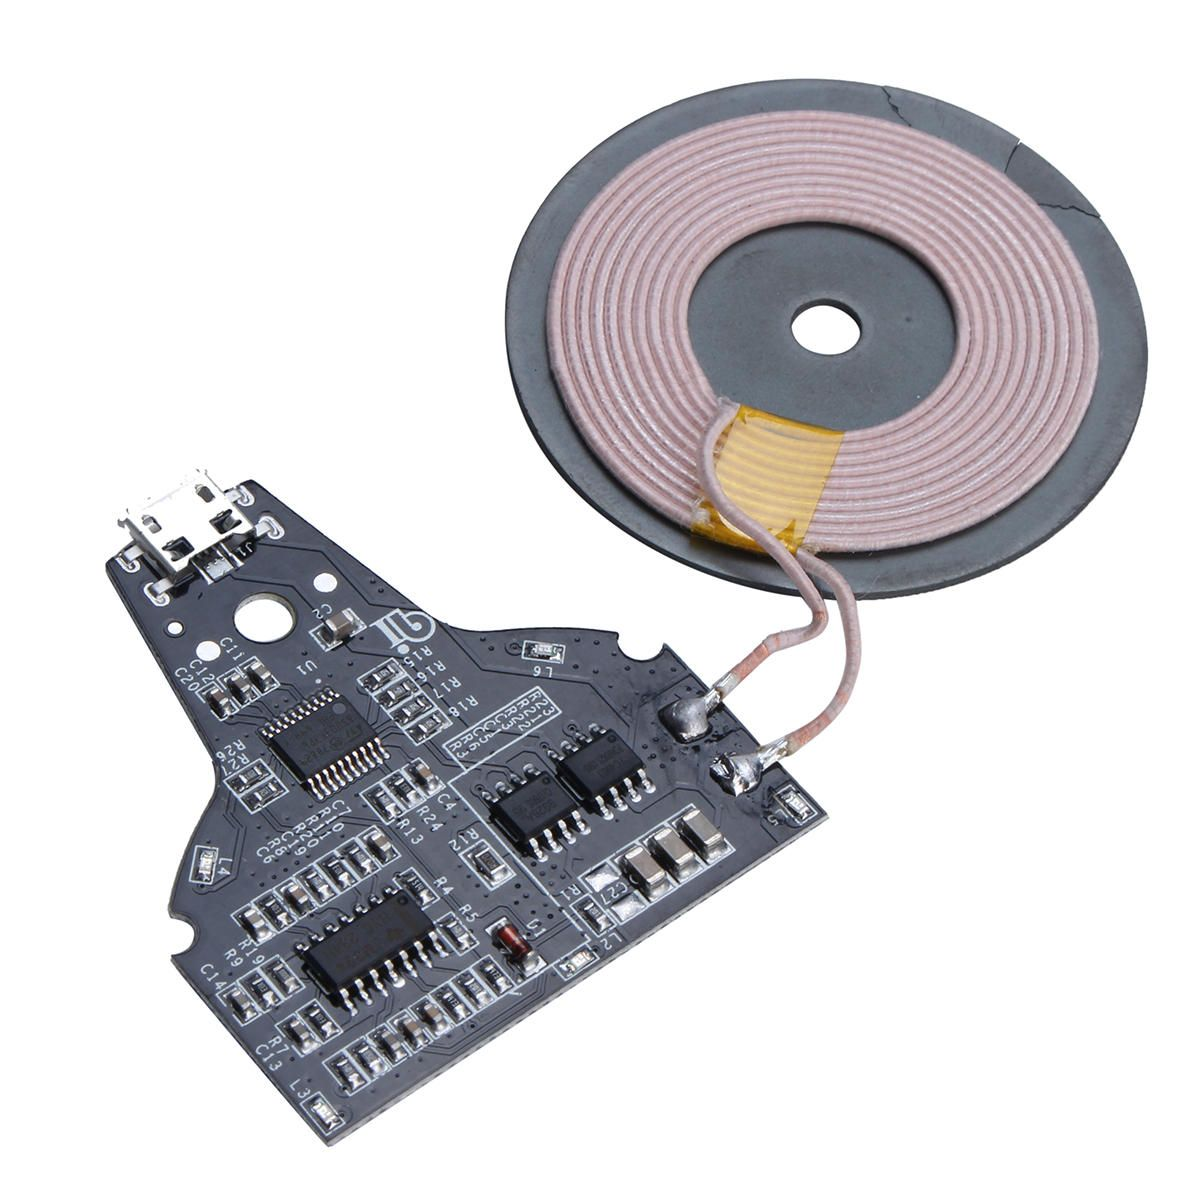 5v 2a Micro Usb Qi Standard Wireless Phone Charger Pcb Circuit Board Schematic Diagram Of Dc Regulated Diy Charging For Mobile